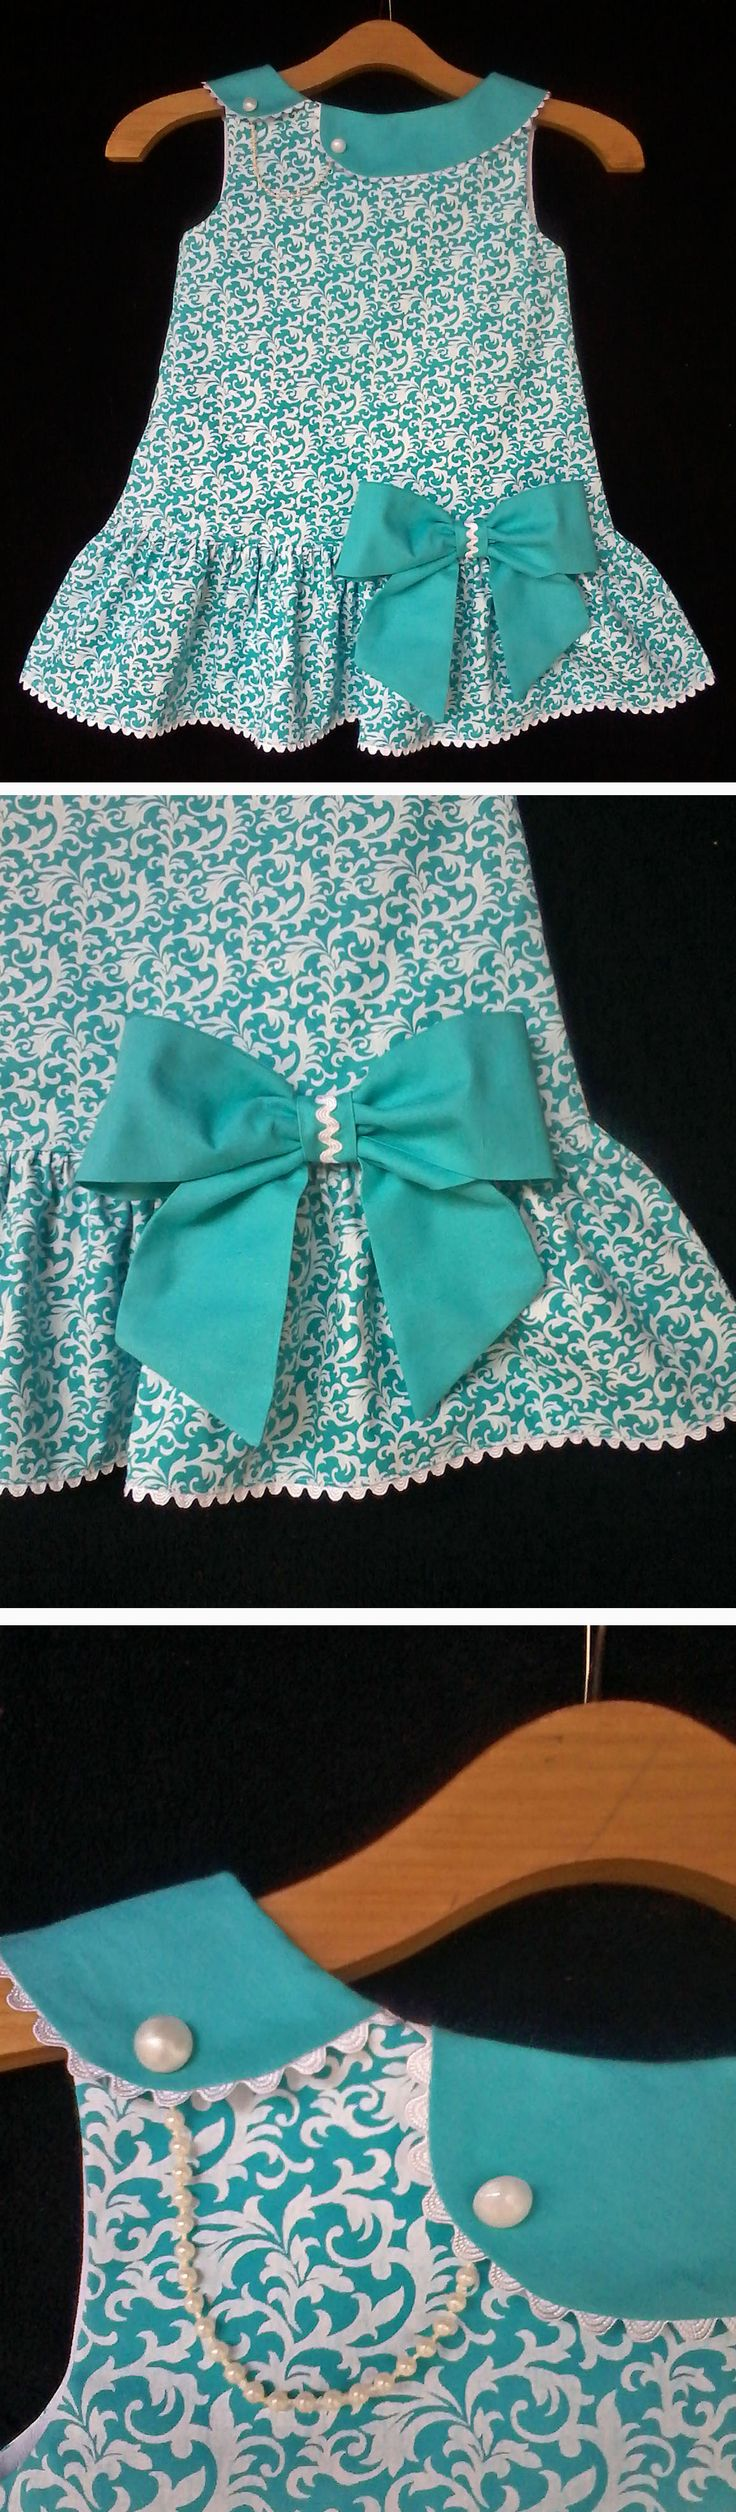 Molde Gratuito no Grupo do Facebook Dona Fada Free pattern in Facebook Group Dona Fada (https://www.facebook.com/groups/1594730384185604/)................................. (RLevyFile-Vestido Verde3anos-GreenDress3years.pdf)